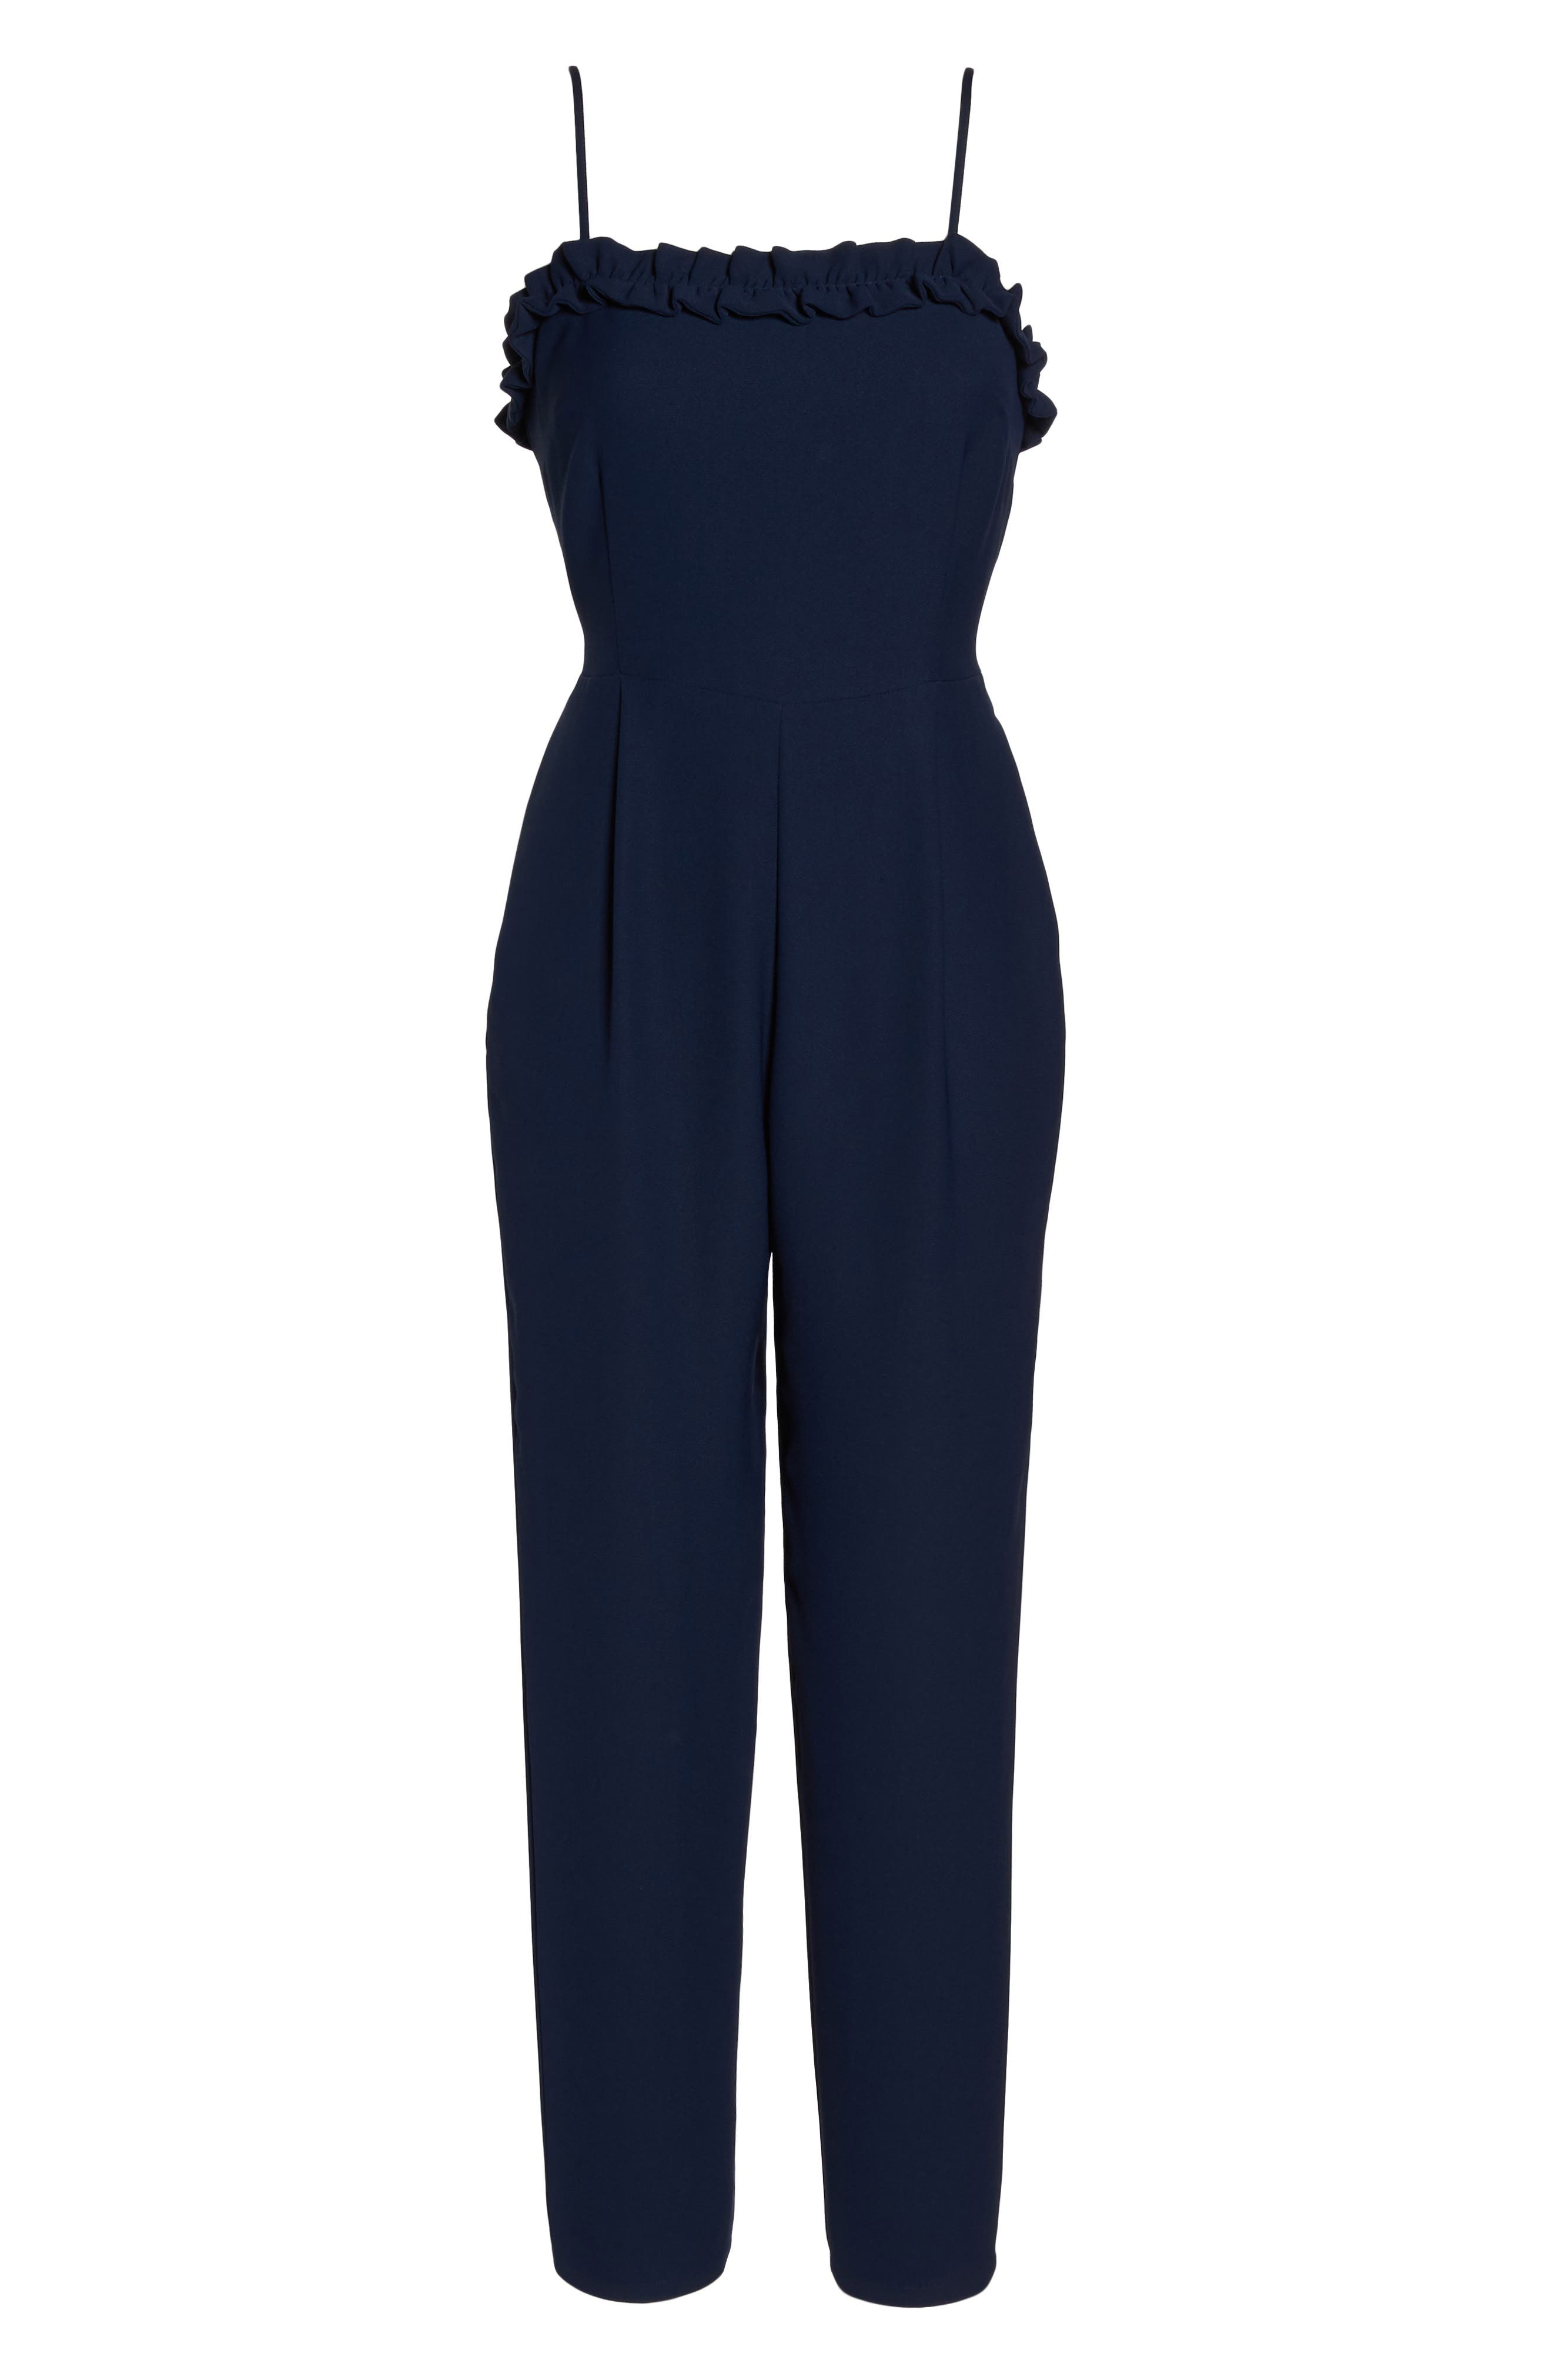 Ruffle Jumpsuit,                             Alternate thumbnail 6, color,                             410